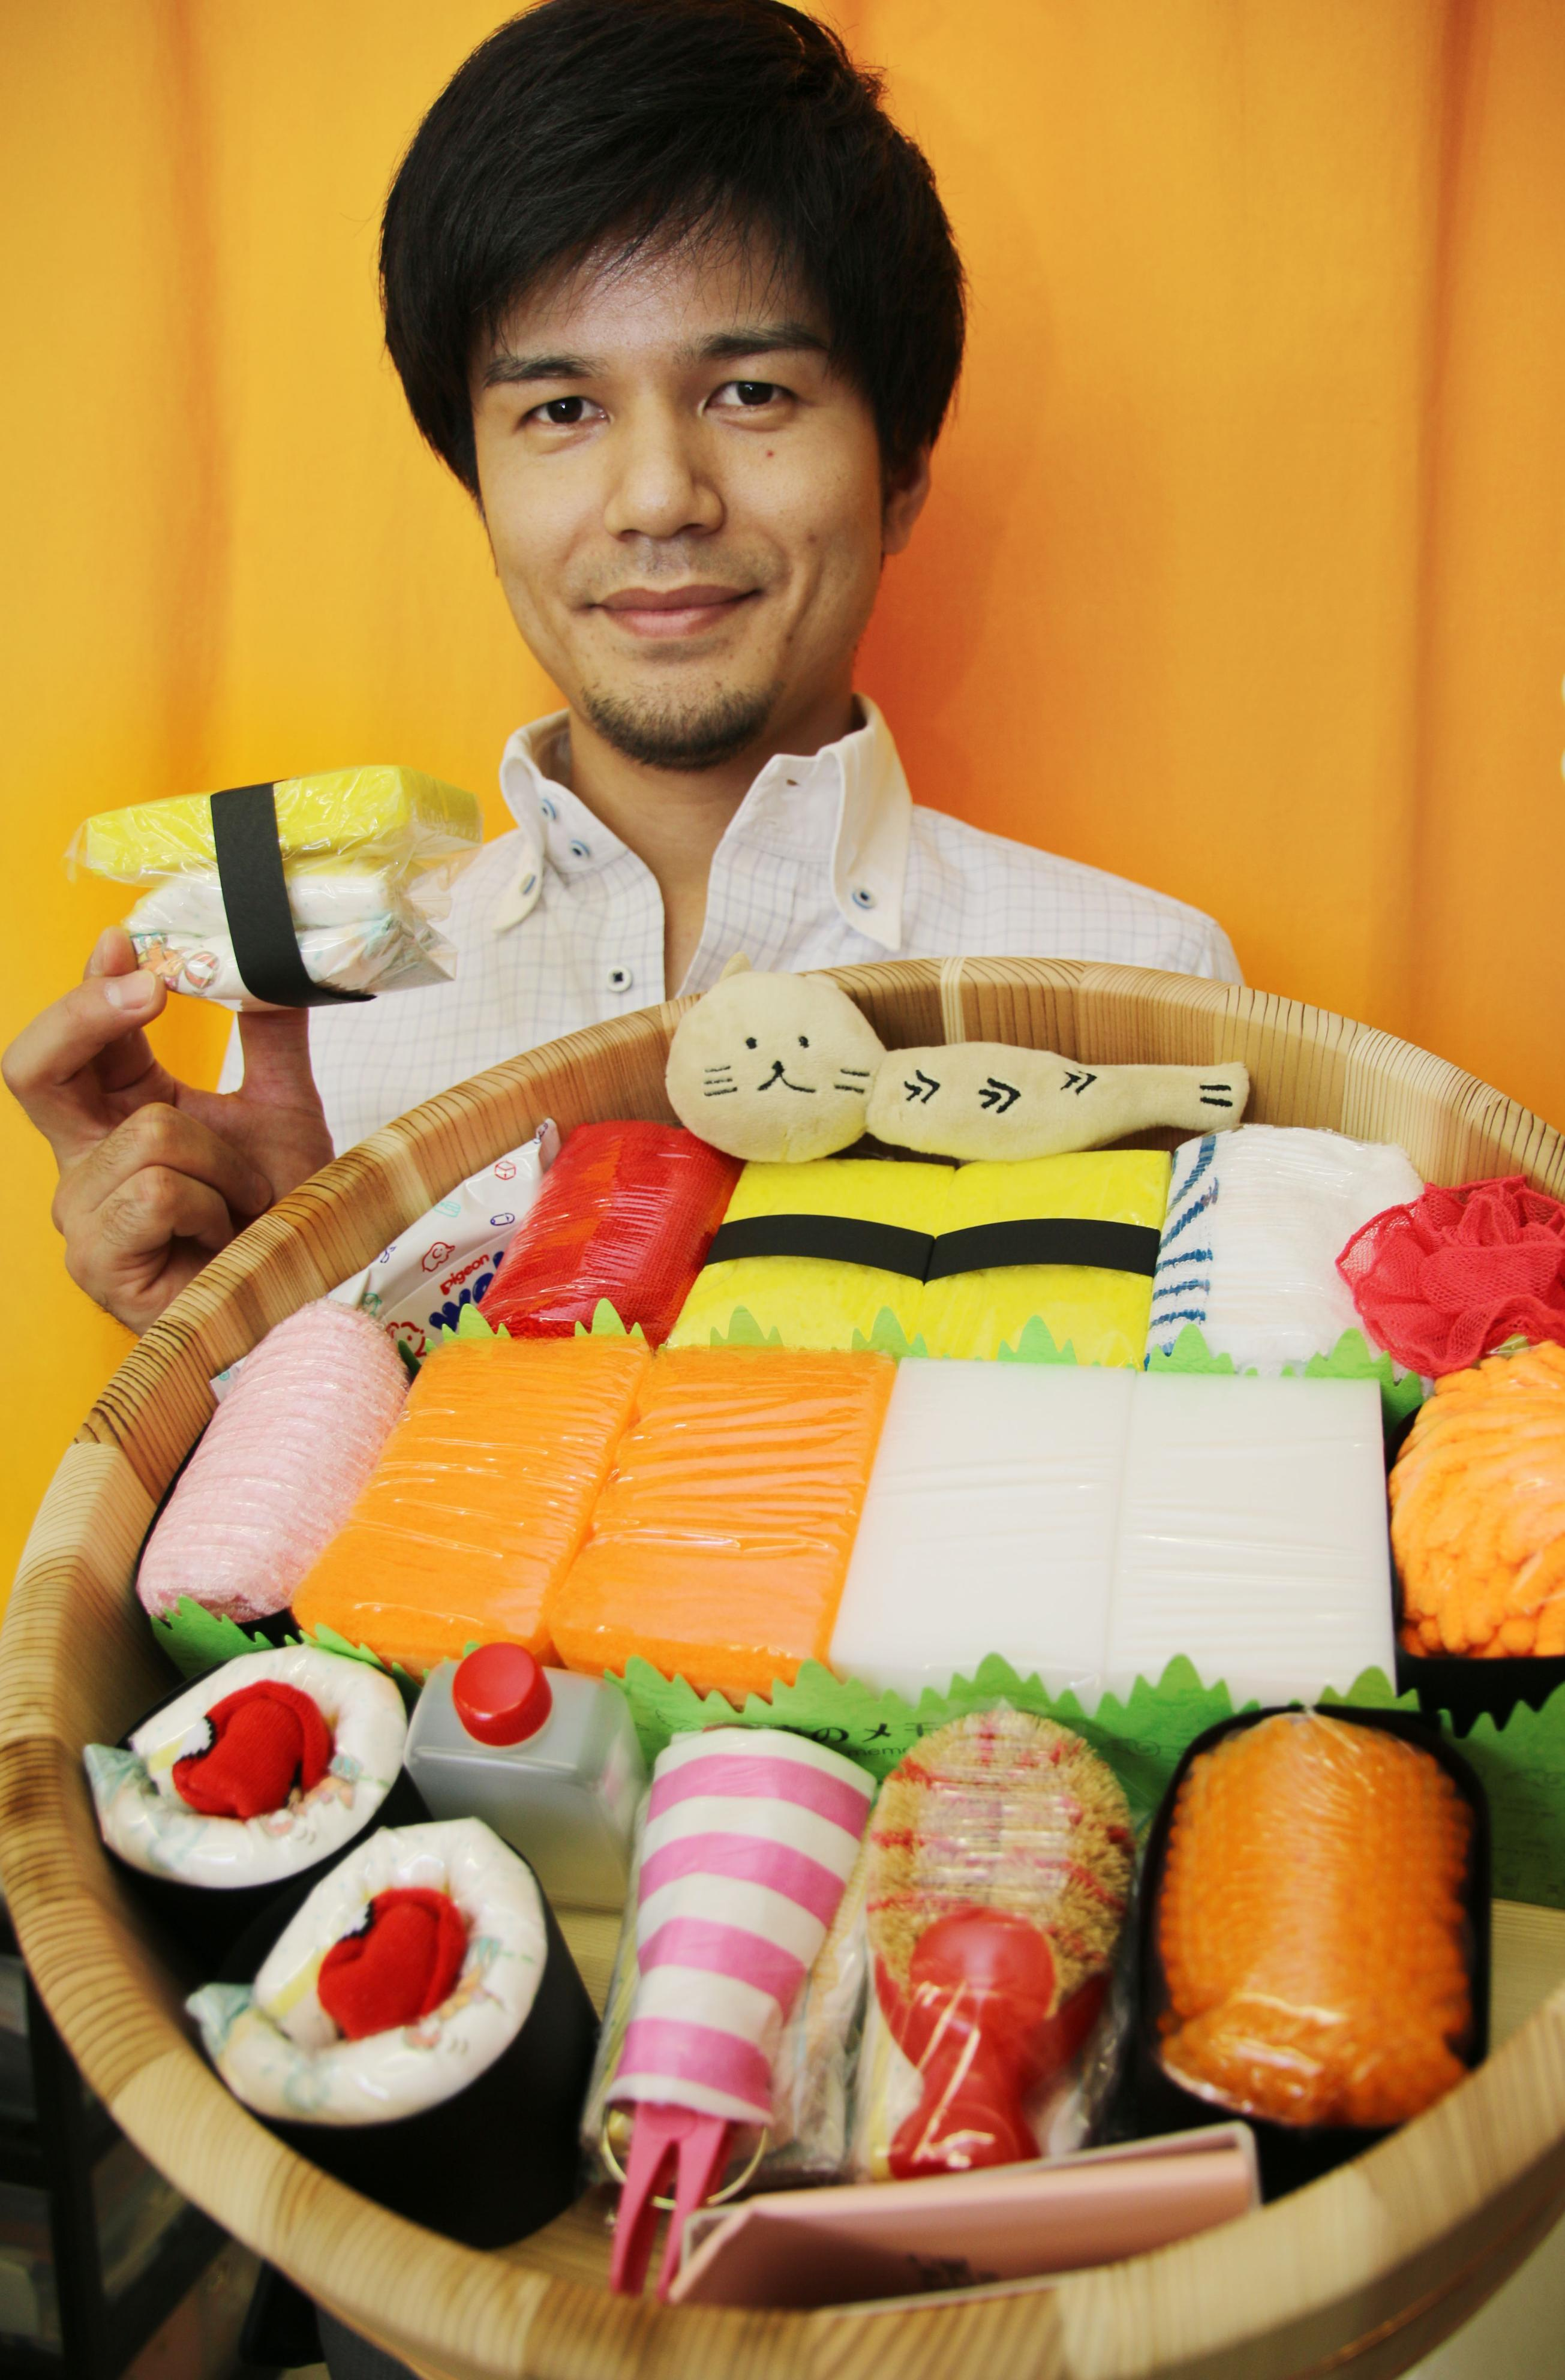 Sushi-resembling diapers prove popular as baby gift in Japan